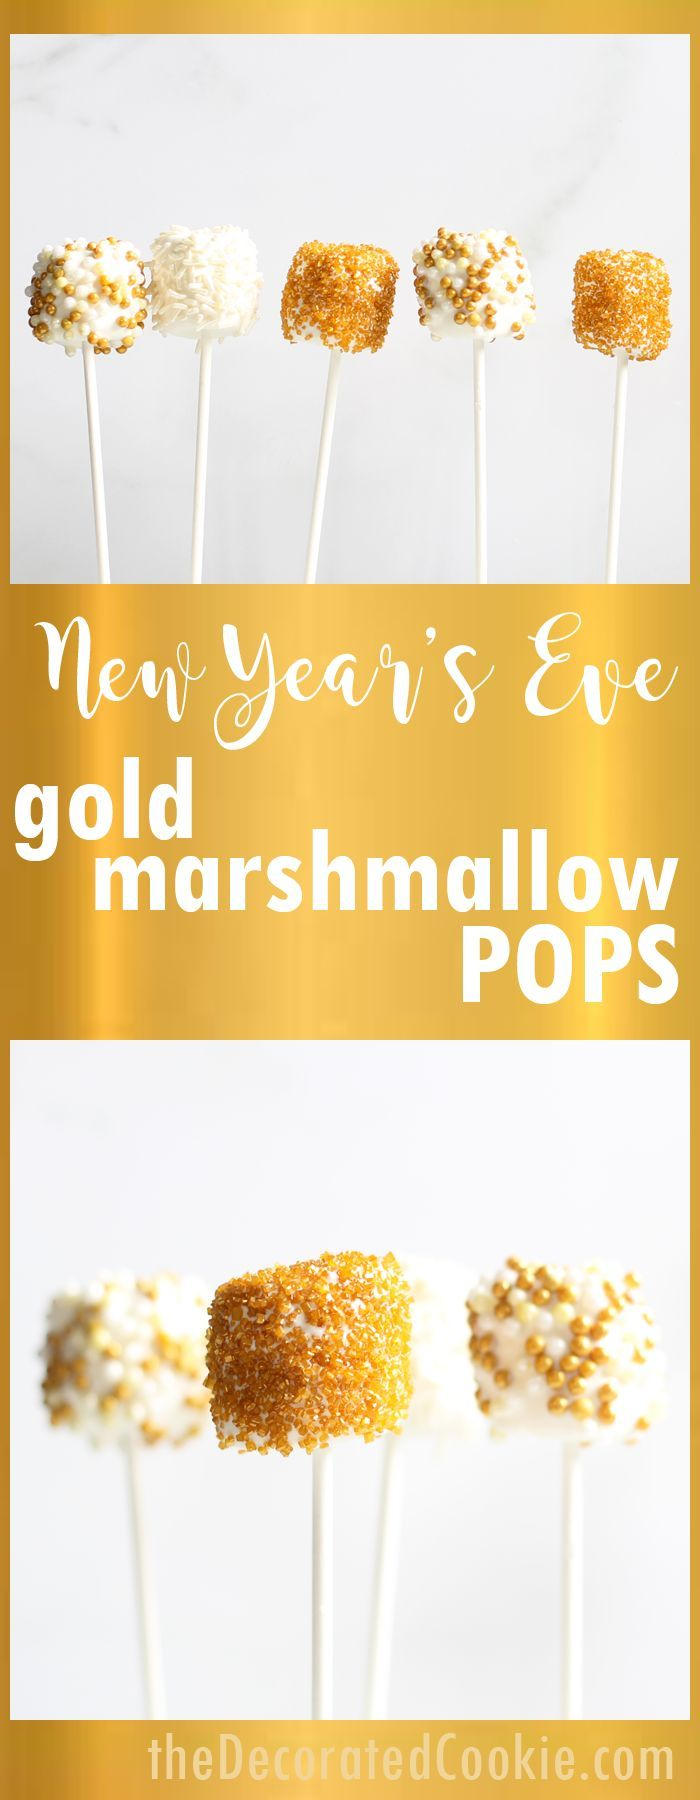 New Year's Eve gold marshmallow pops! Easy fun food idea for your New Years party.